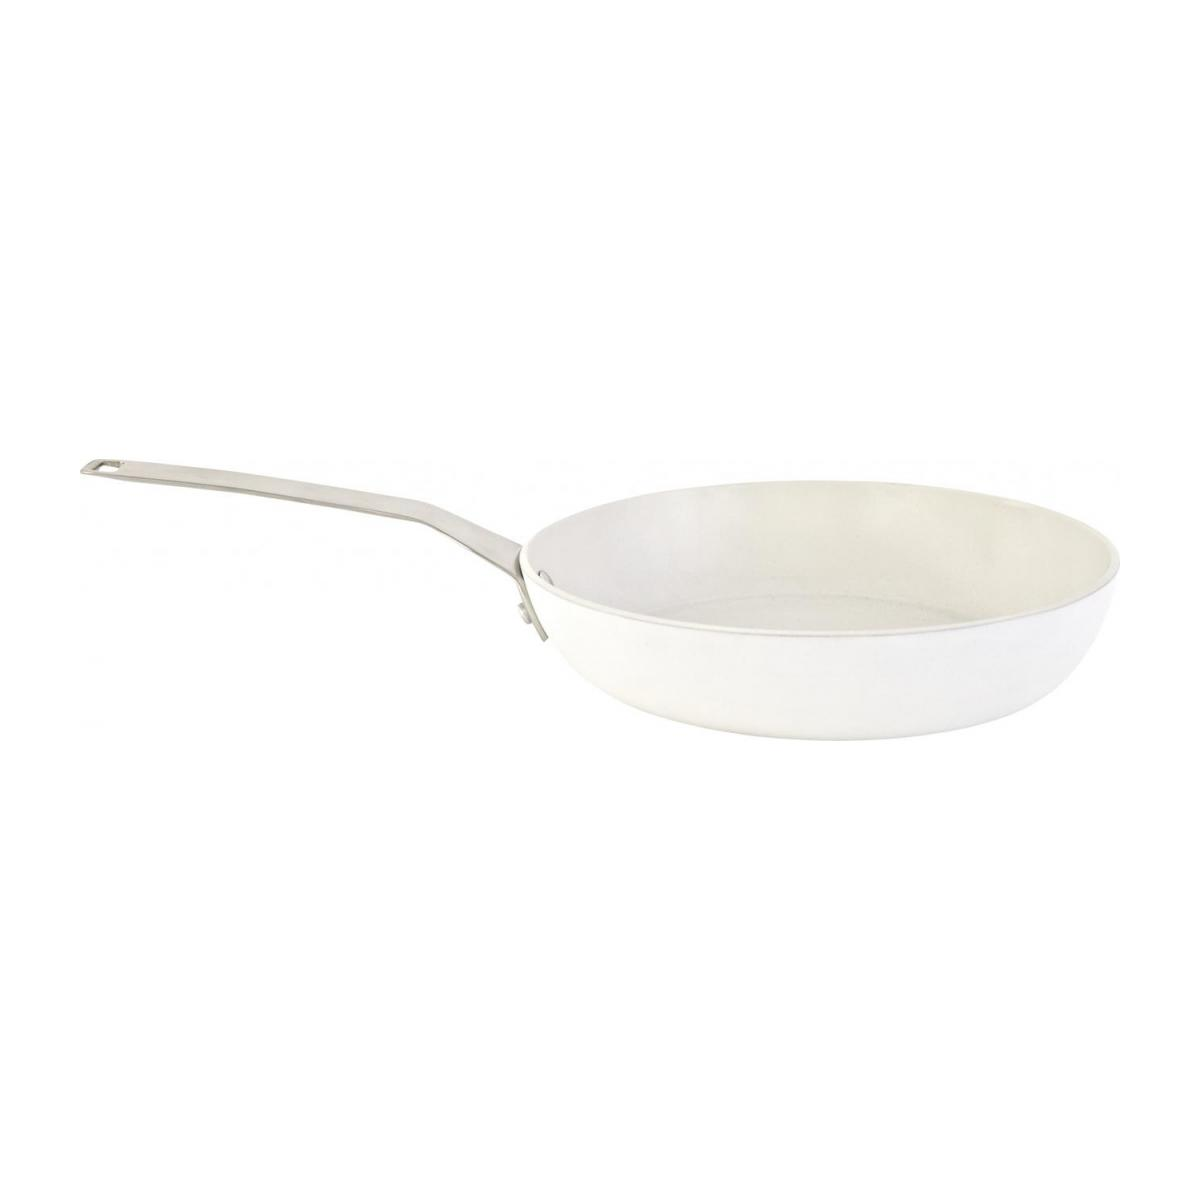 White aluminium pan 28 cm with inner coating in ceramic n°1